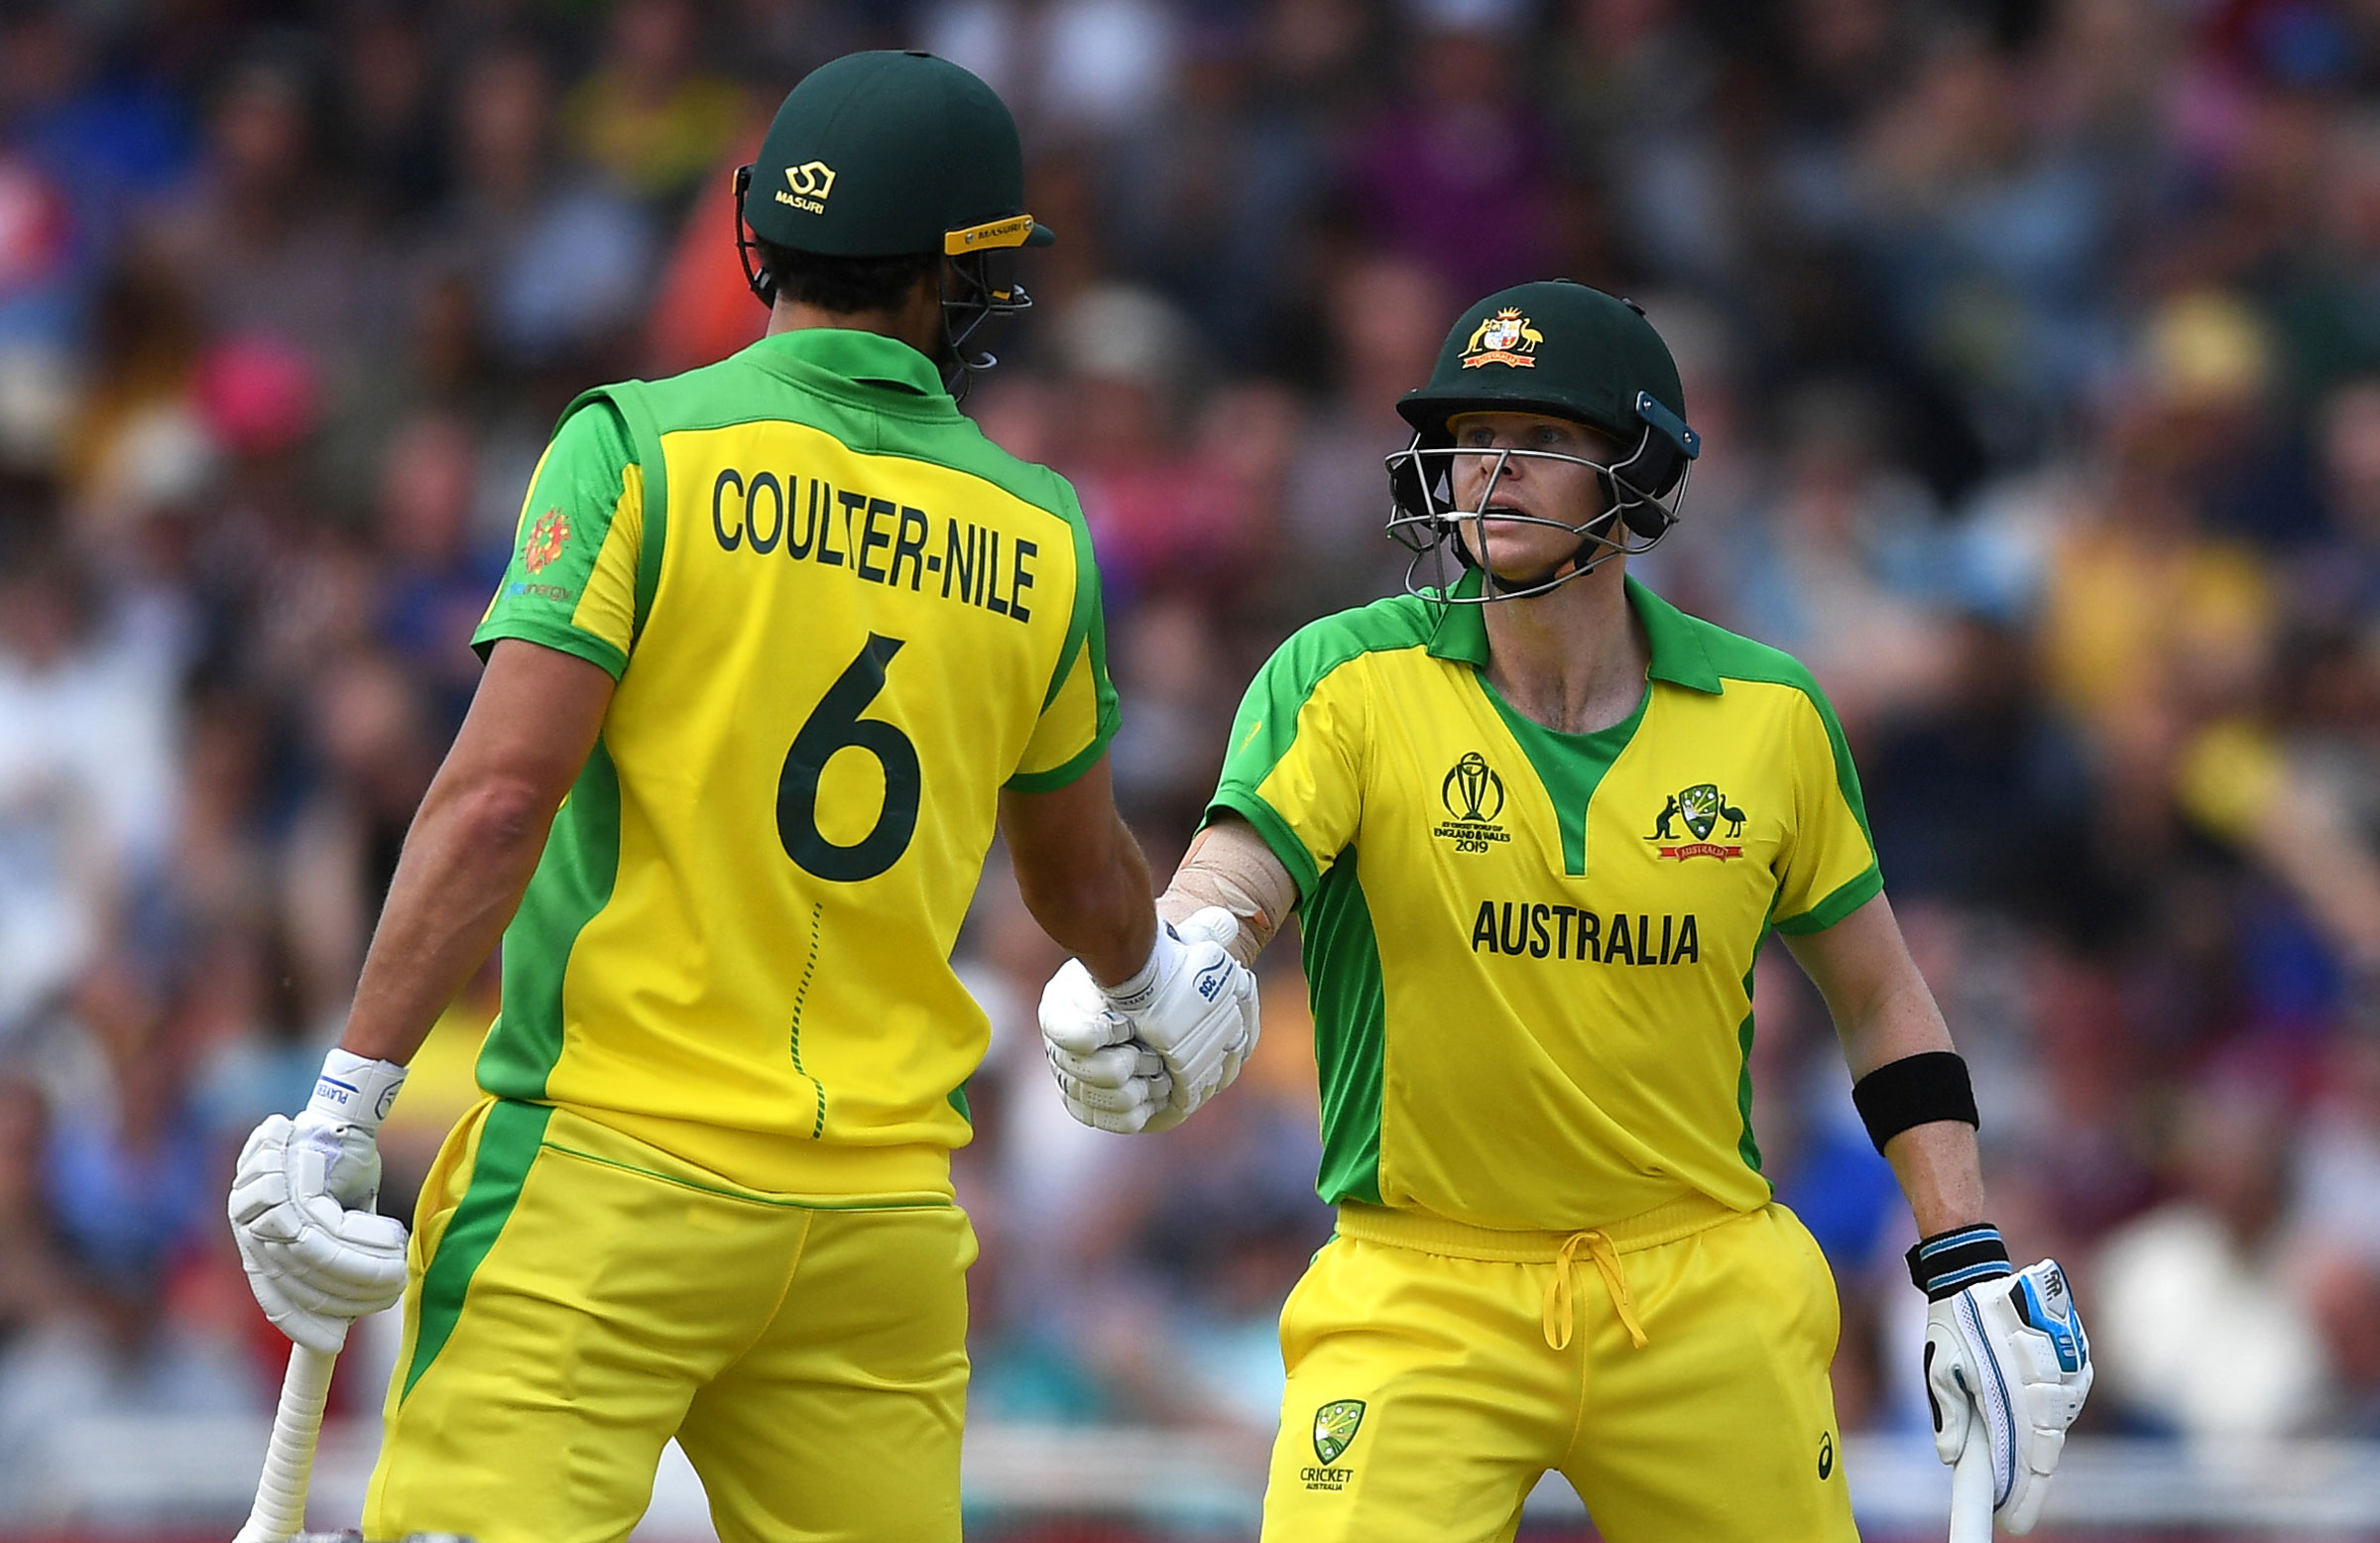 Nathan Coulter-Nile and Steve Smith resurrected the Australian innings // Getty